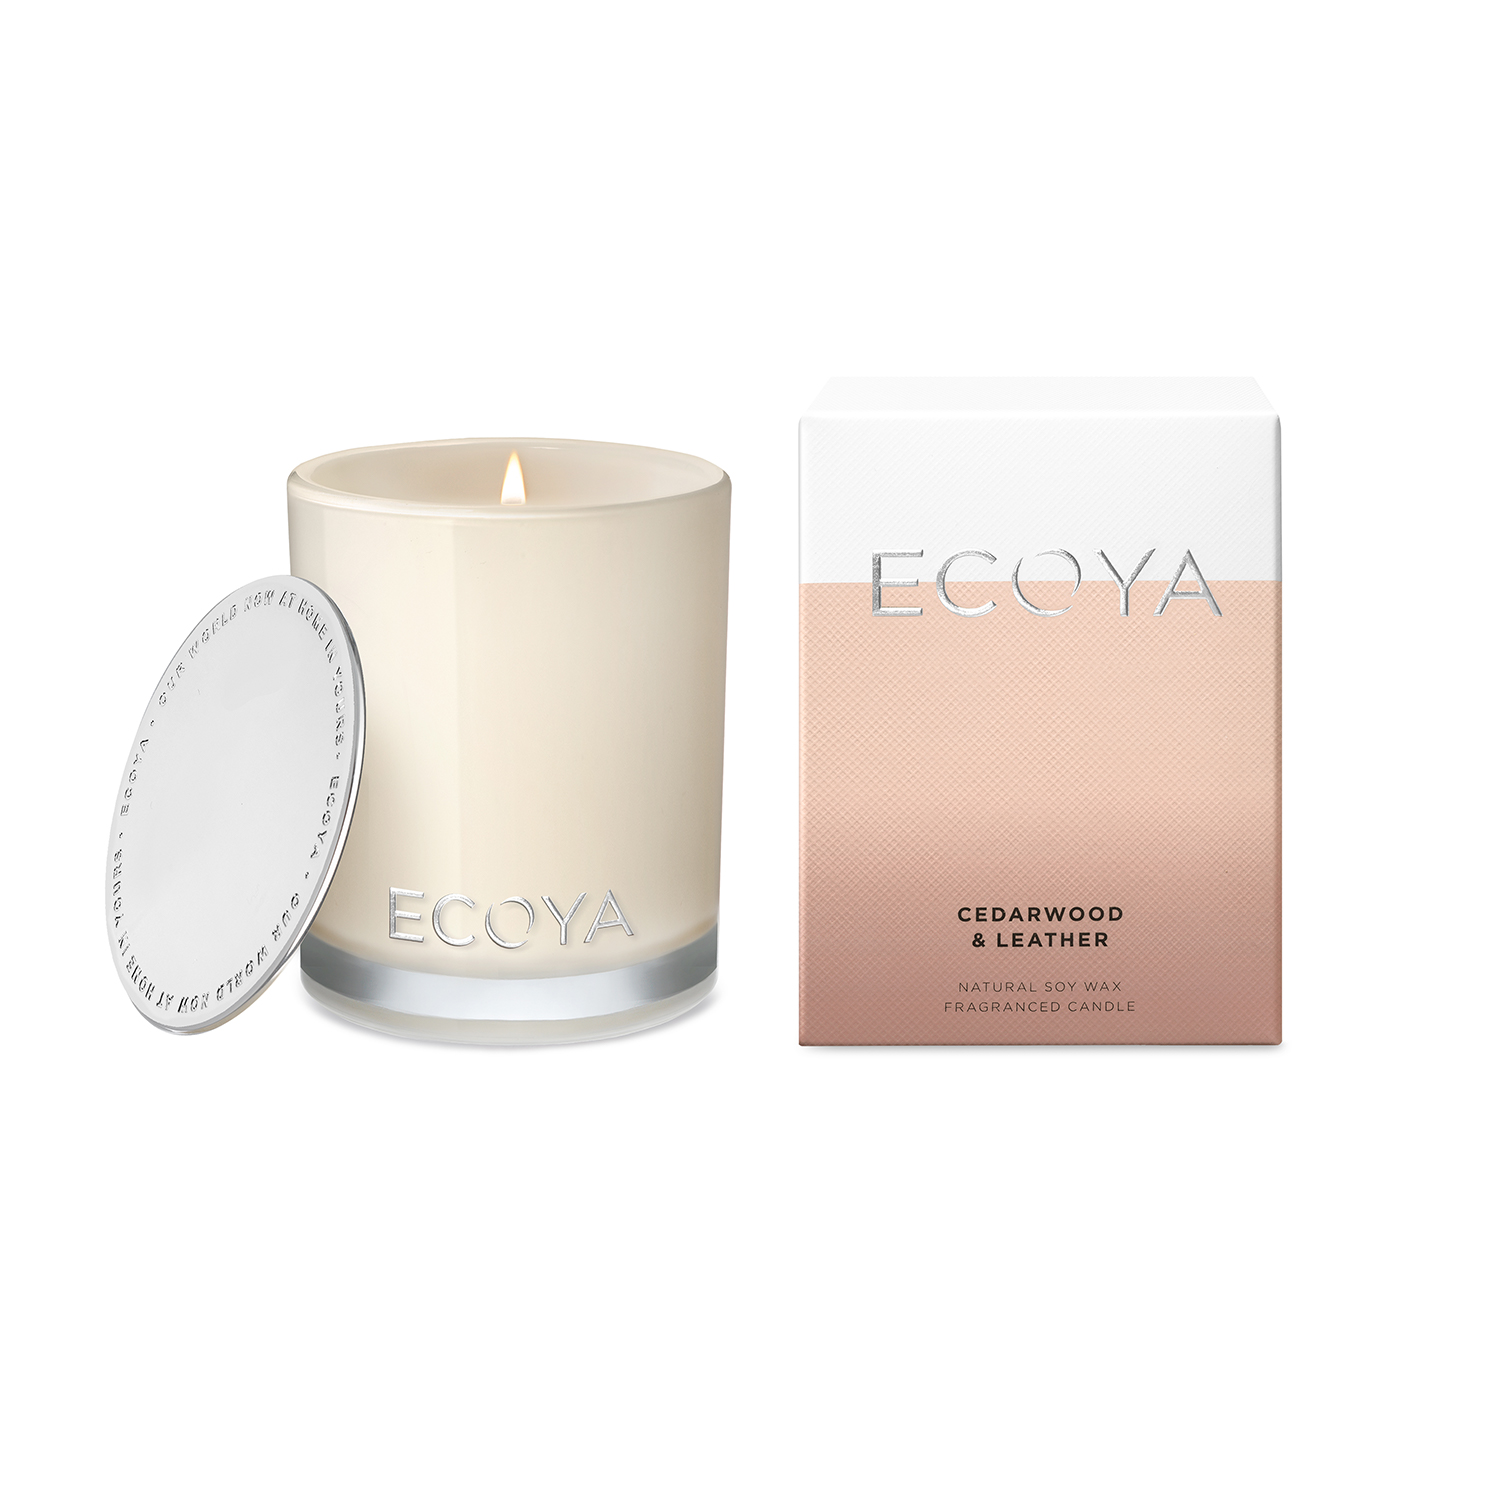 Ecoya Cedarwood and Leather Madison Jar Candle 400g